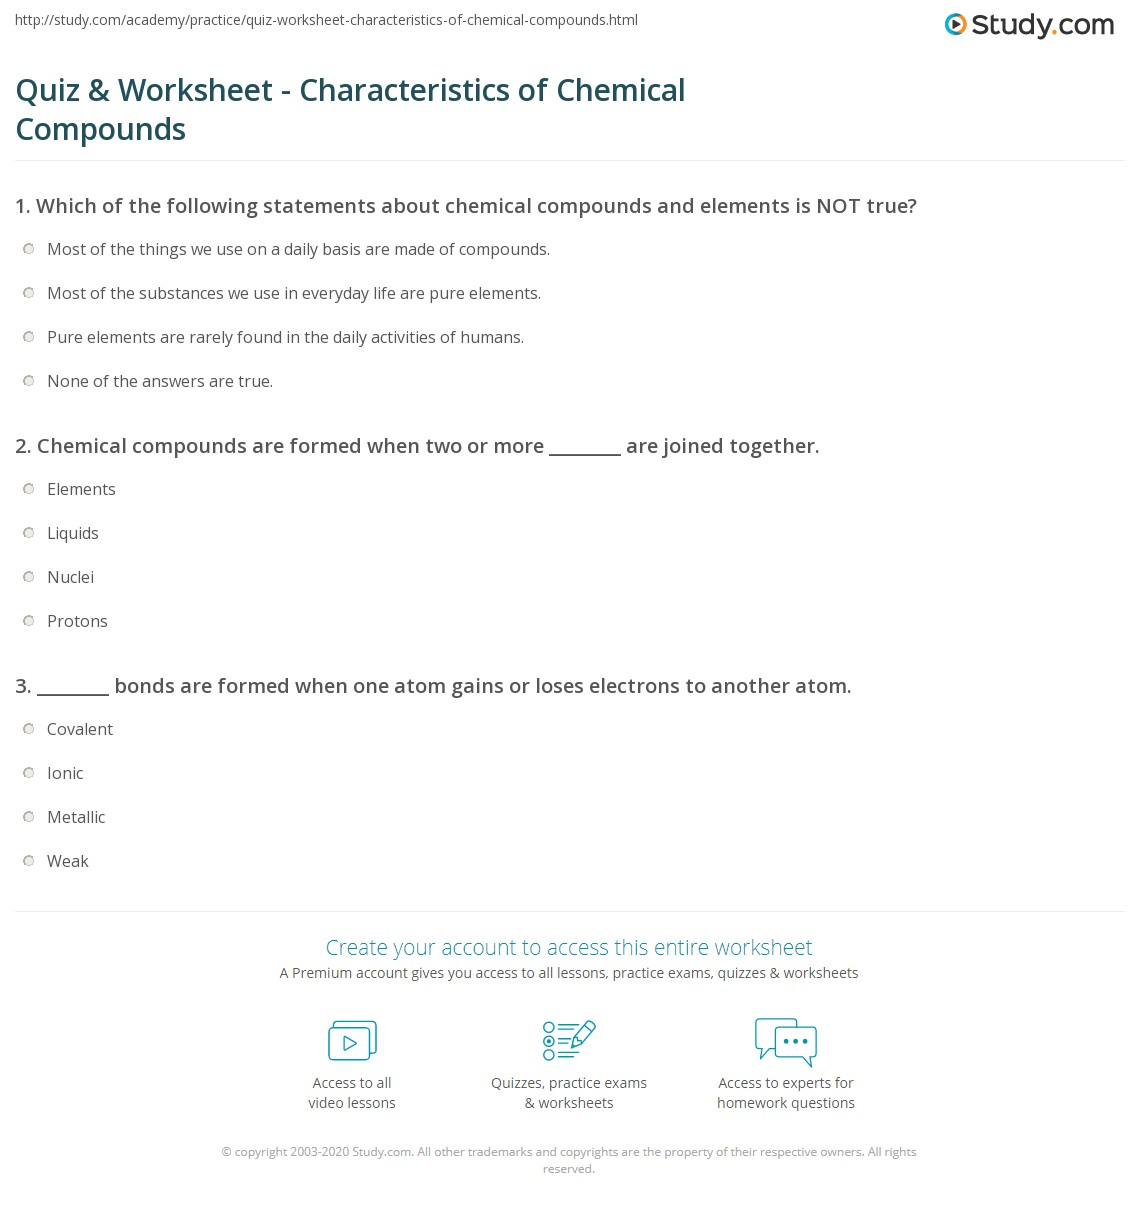 Quiz Worksheet Characteristics Of Chemical Compounds Study